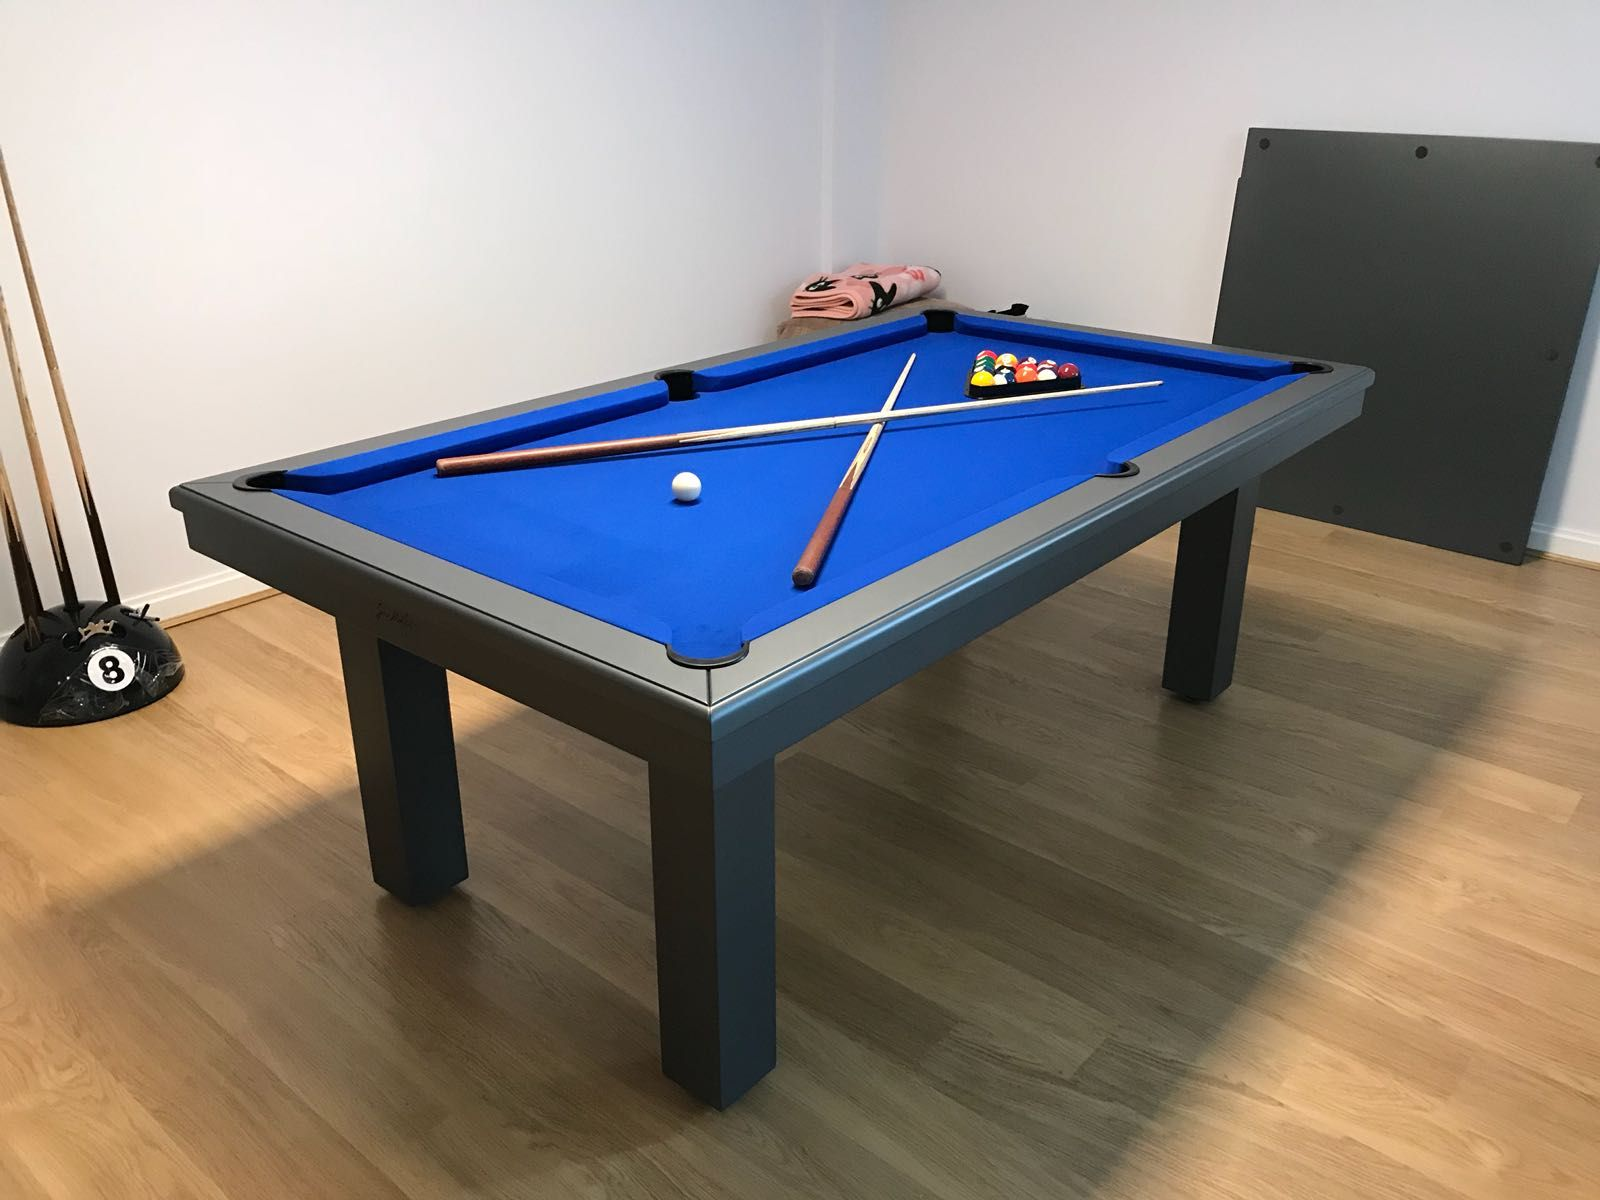 The Billards Montfort Aldernay Is A Great Looking Pool Table You - Huge pool table